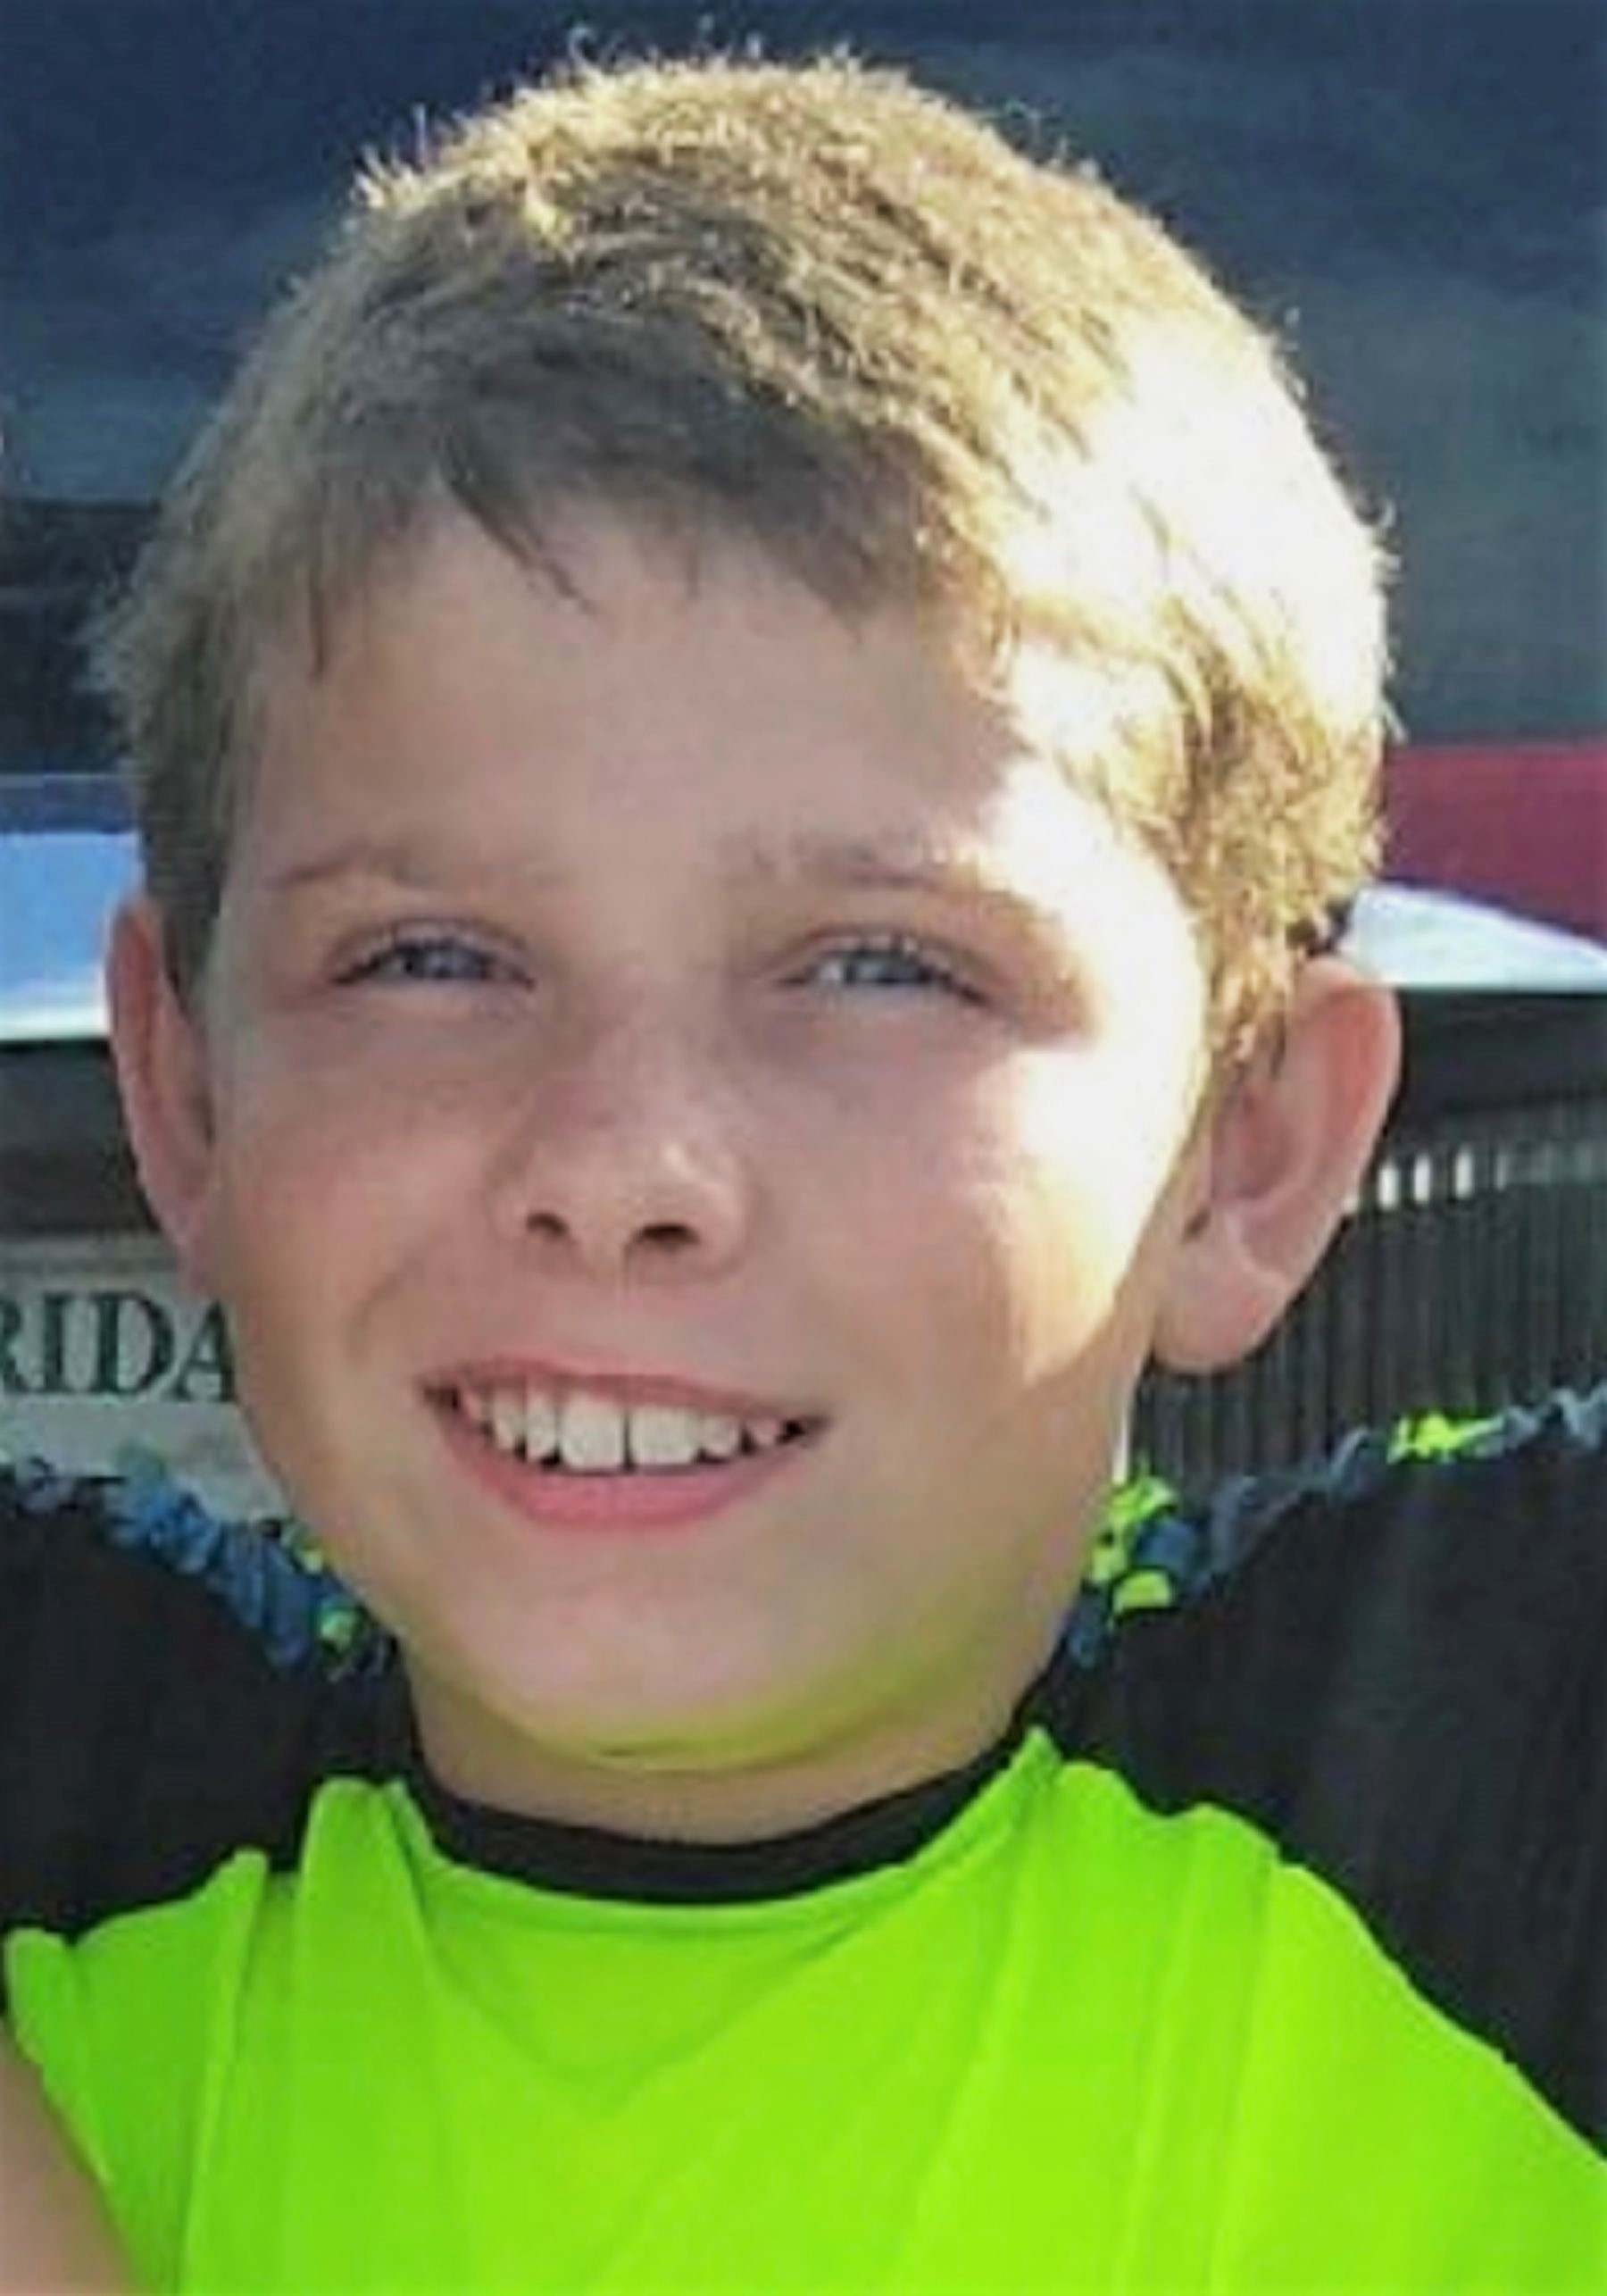 13-Year-Old Florida Boy Is Killed in Hit-and-Run on Same Road Where Mom Died Months Earlier